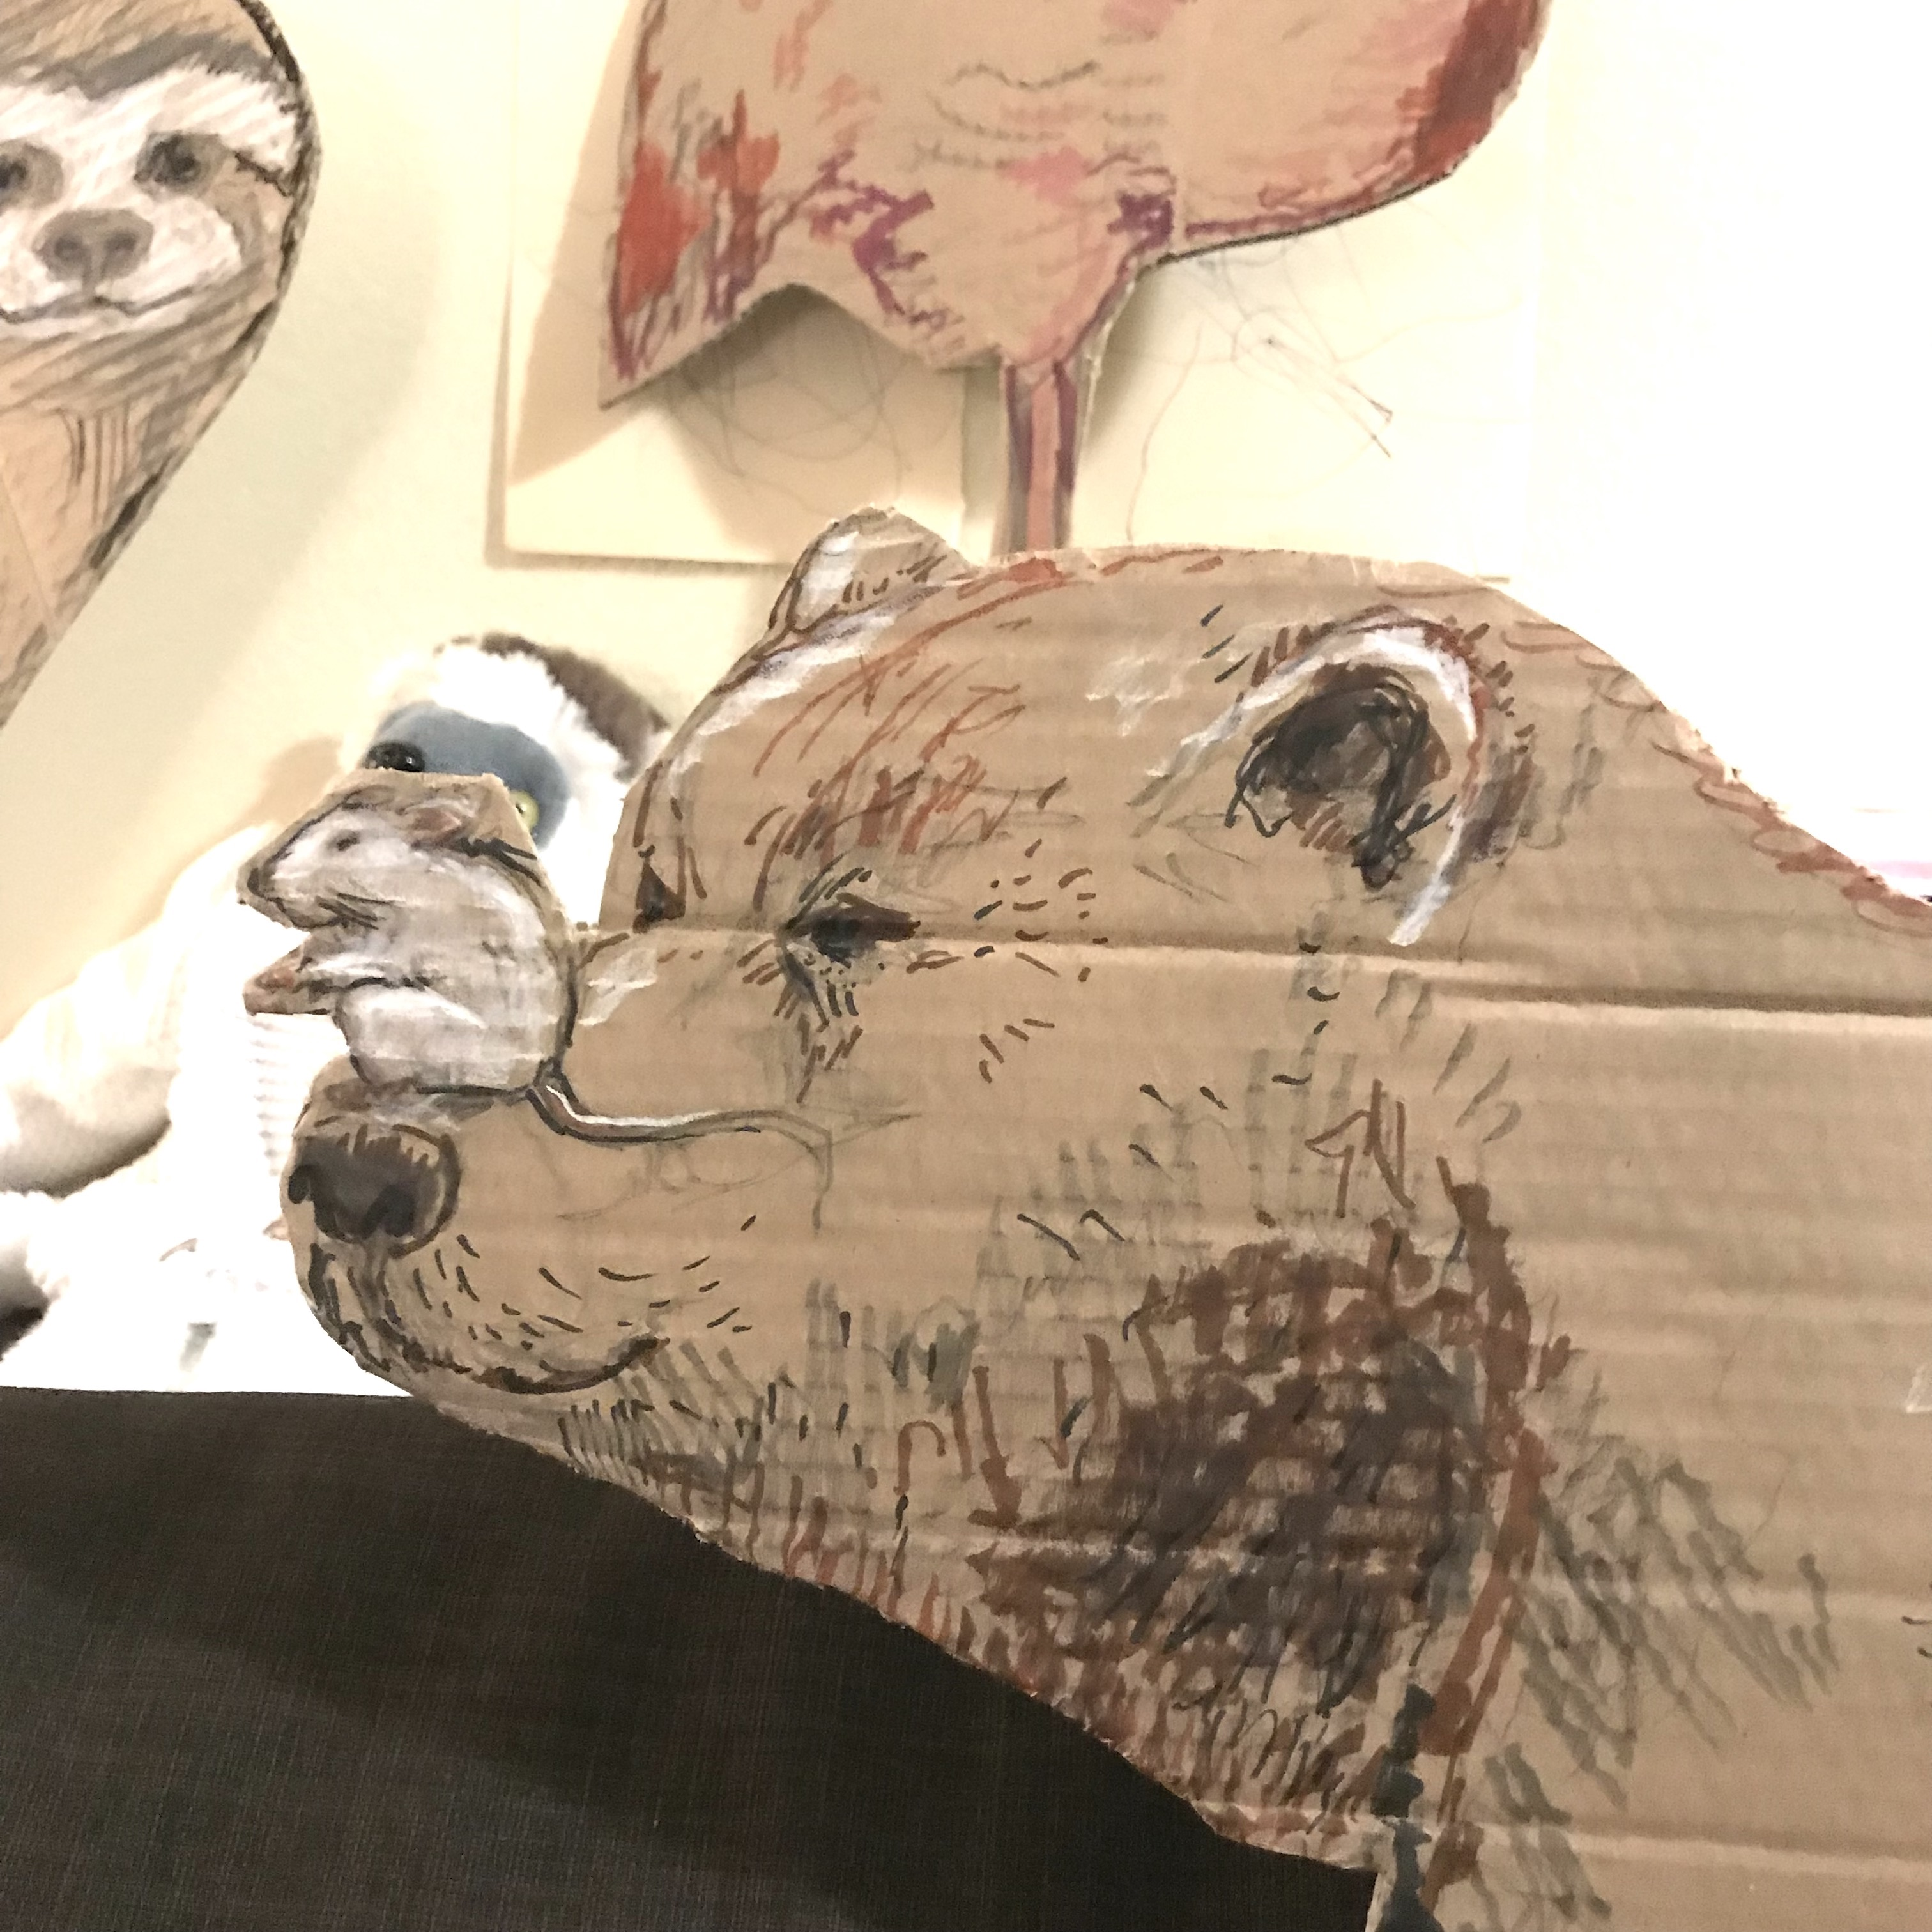 bear head with mouse on nose, cut out and drawn on cardboard